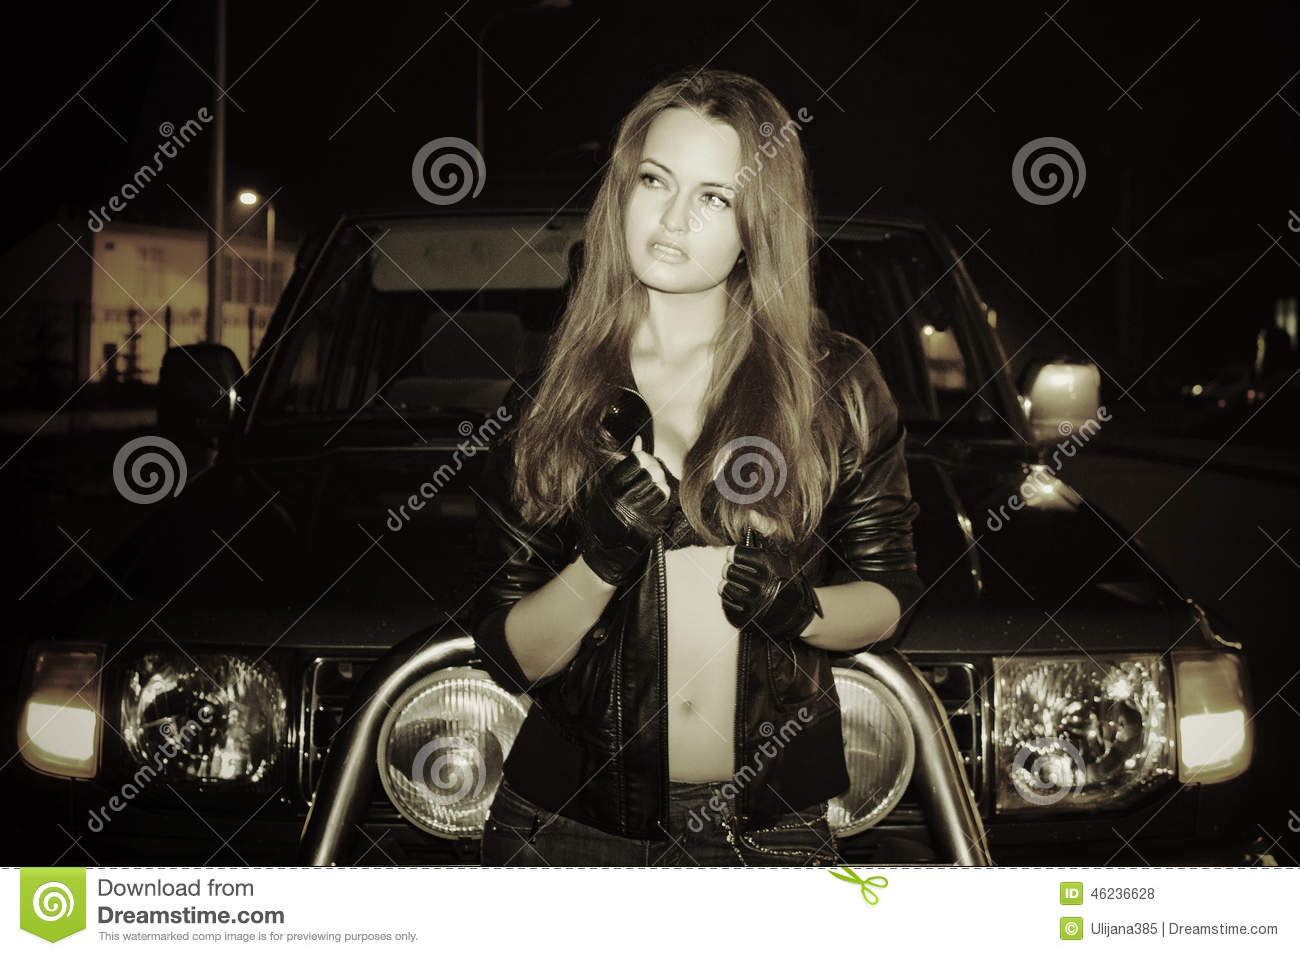 Driving gloves girl - Sexy Girl And Suv Royalty Free Stock Photos